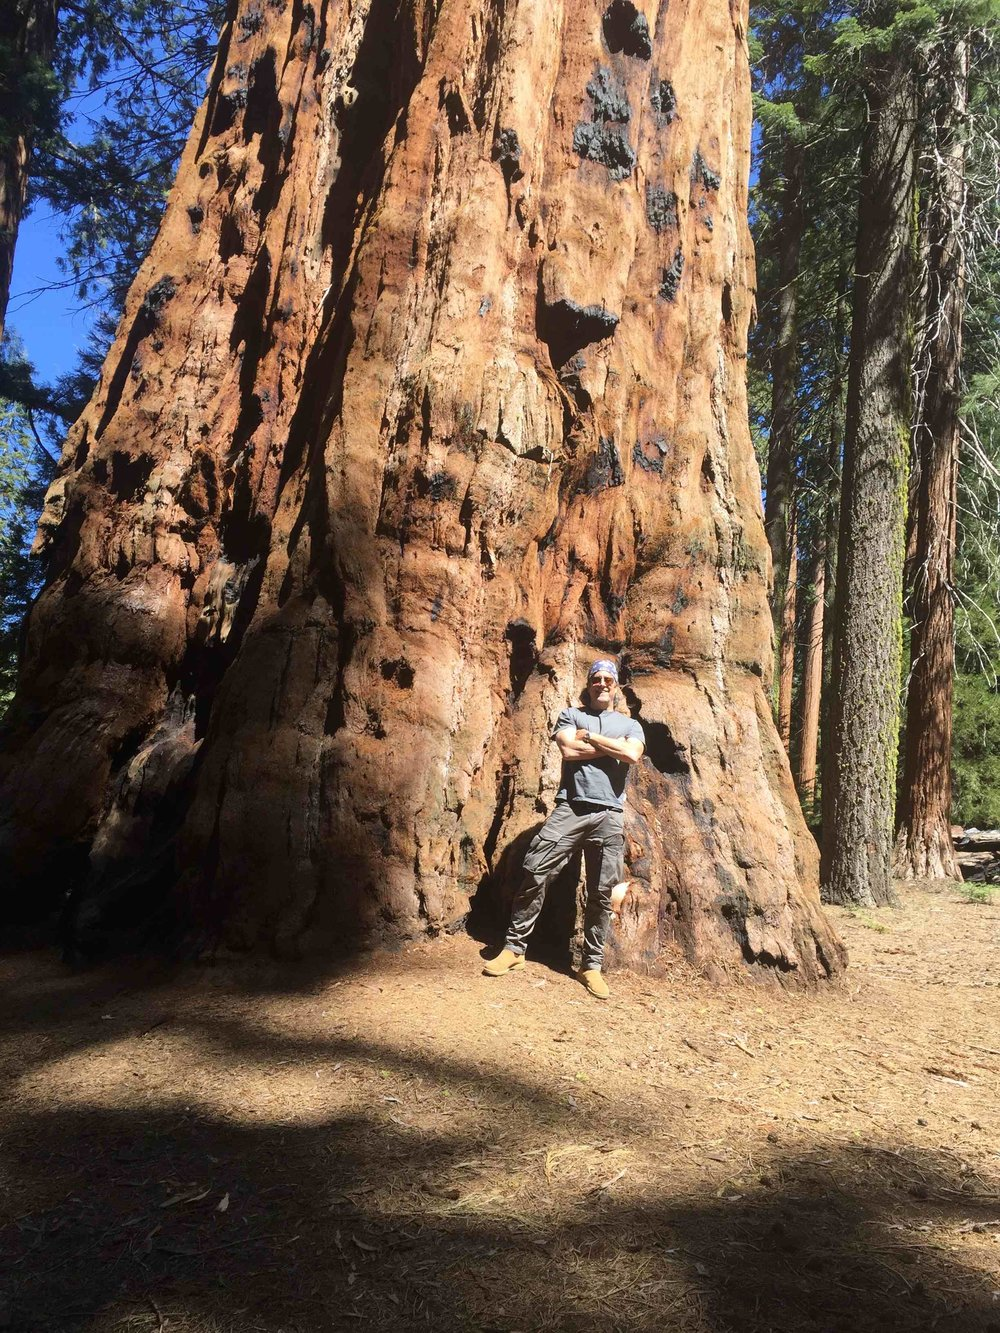 The ancient ones -- giant Sequoia's